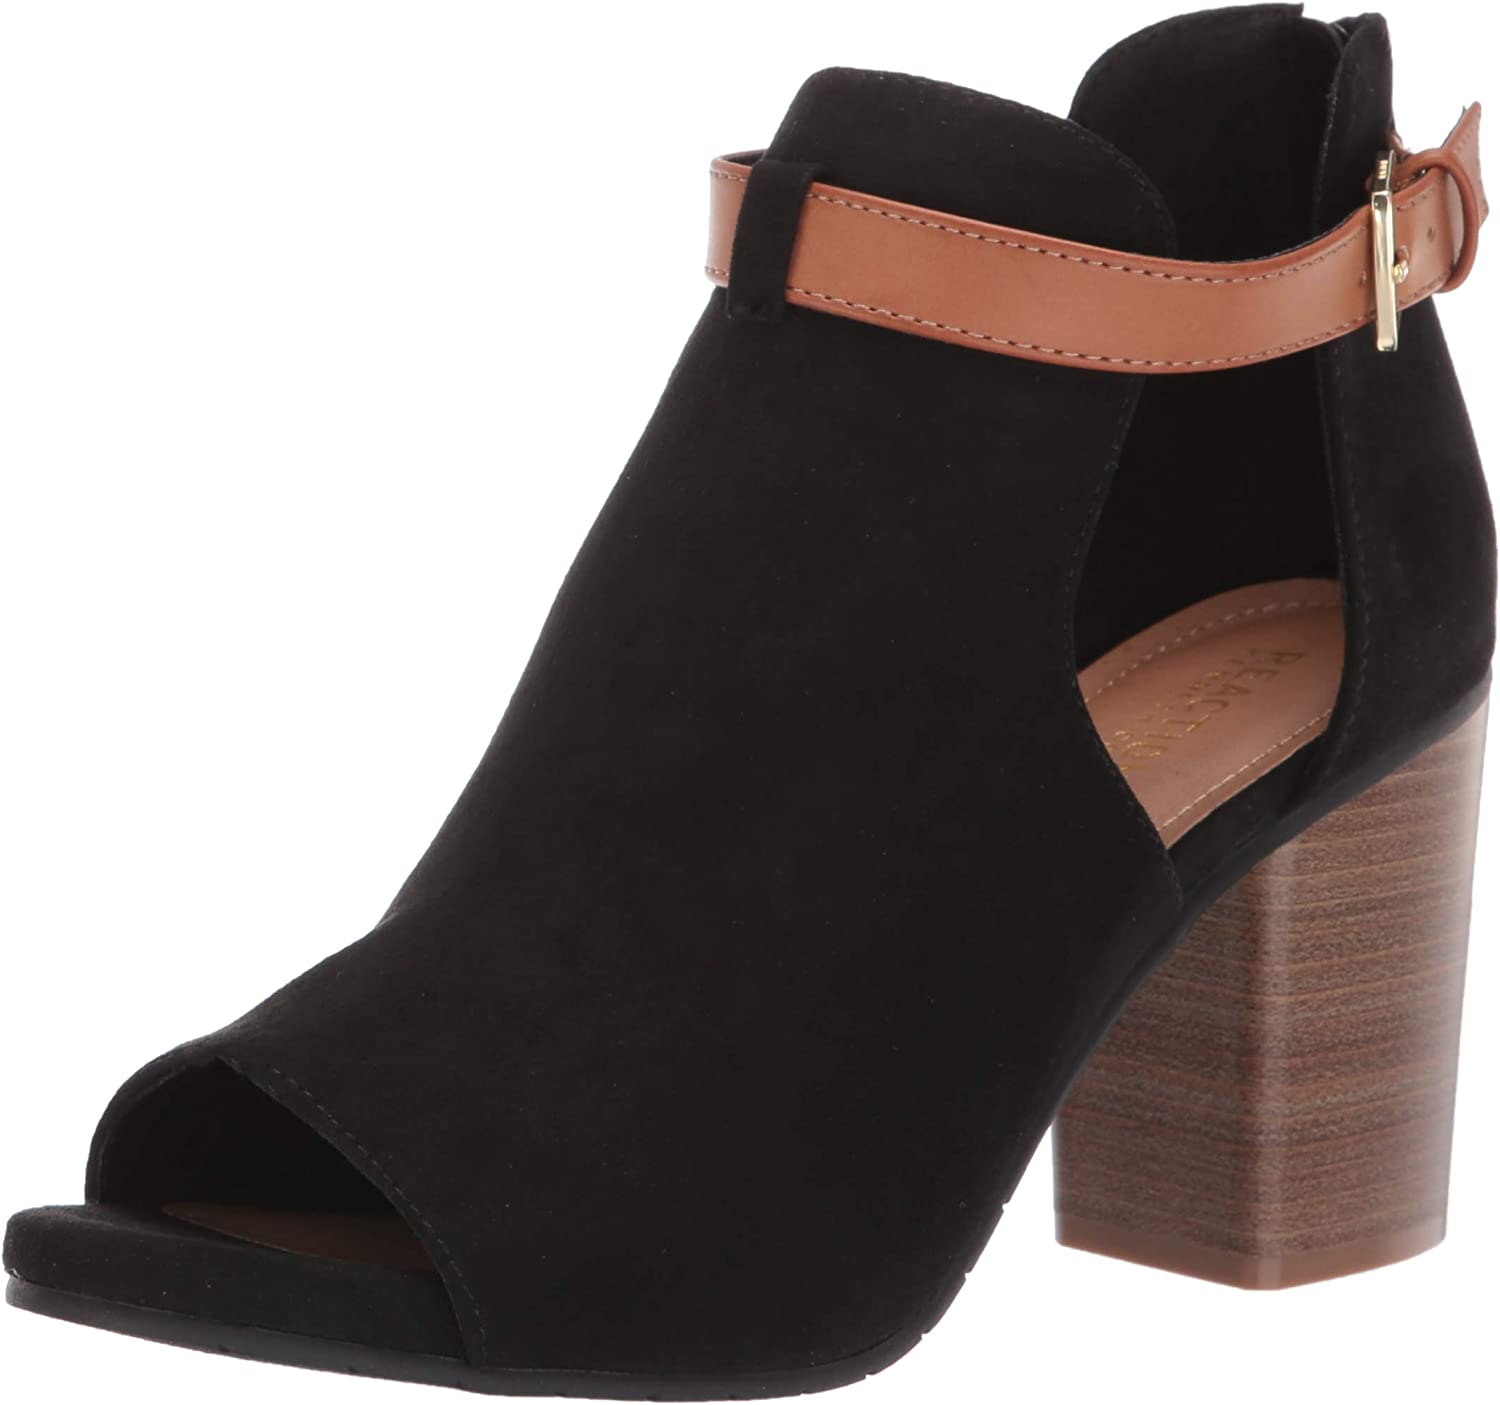 Kenneth Cole REACTION Women's Hit Hooded Bootie Ankle Boot